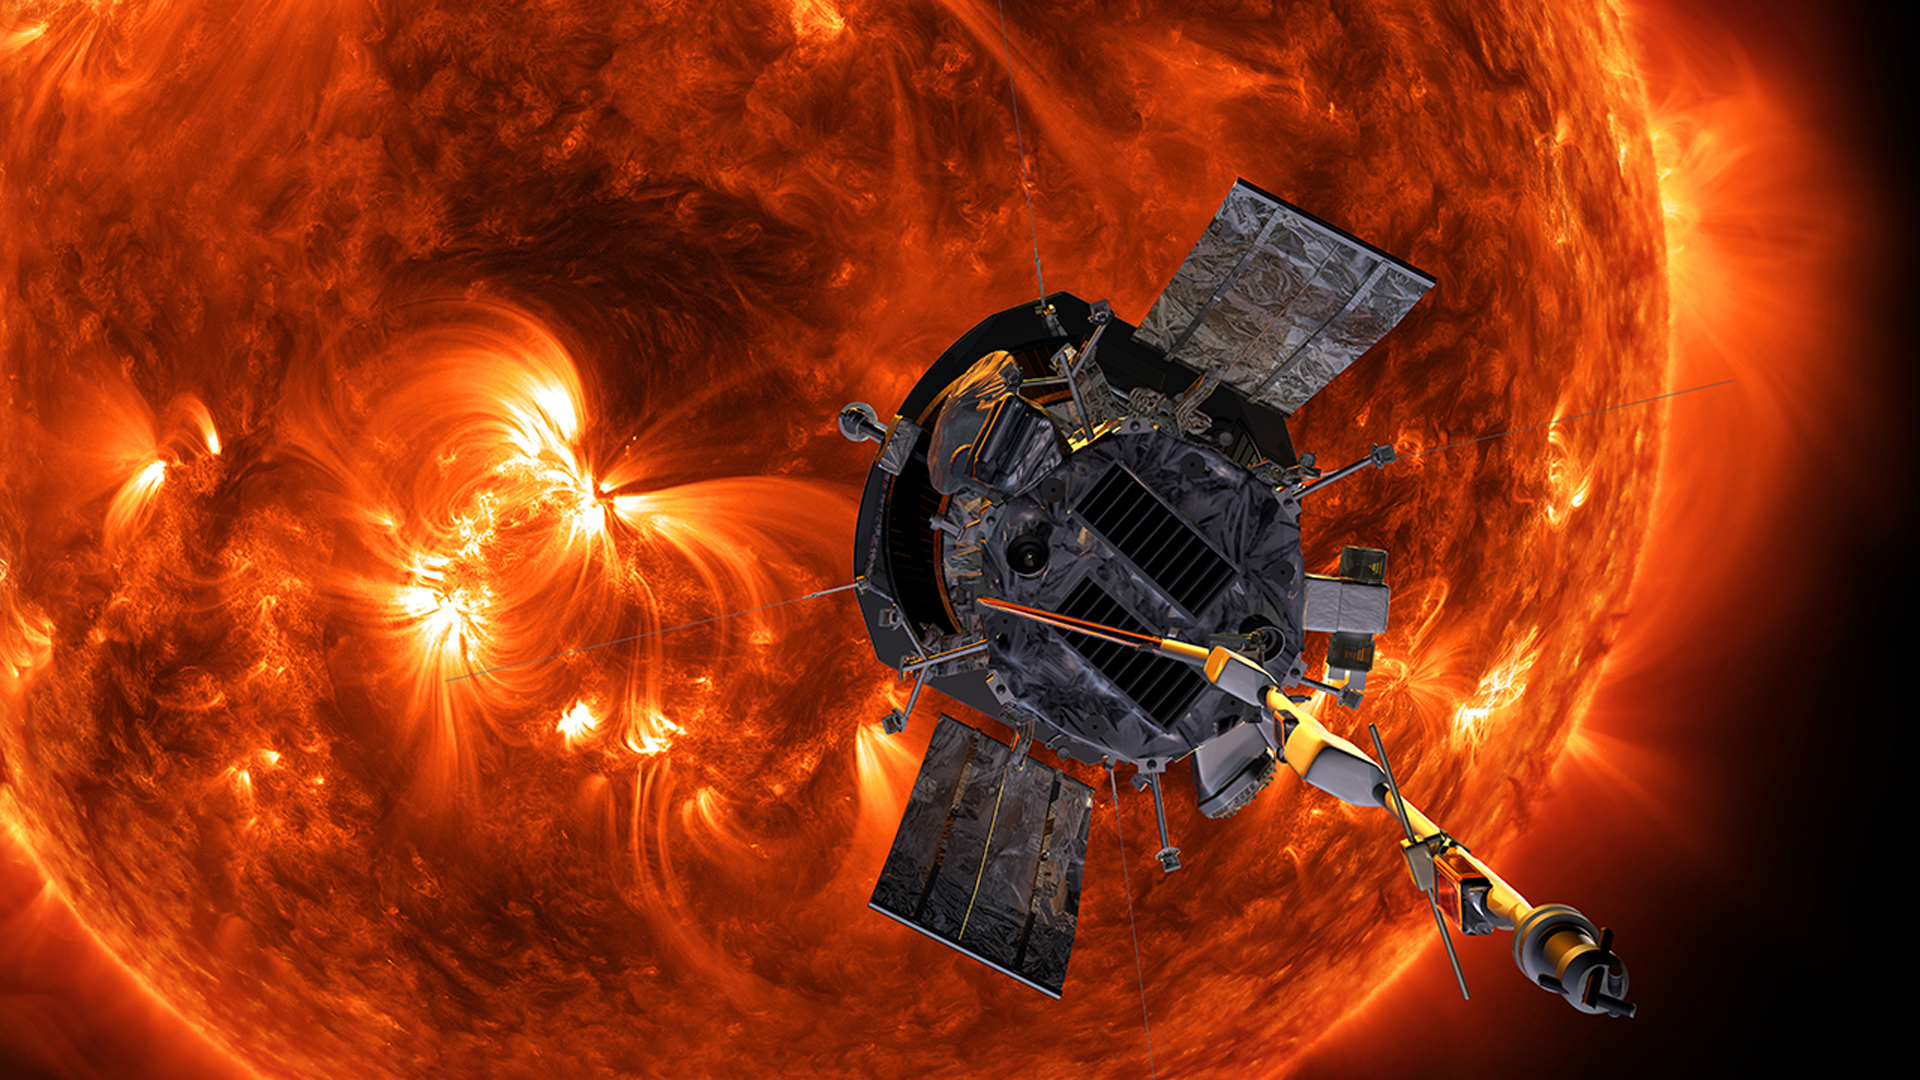 NASA's Parker Solar Probe has 'succeeded' after it whizzed past the Sun for the first time